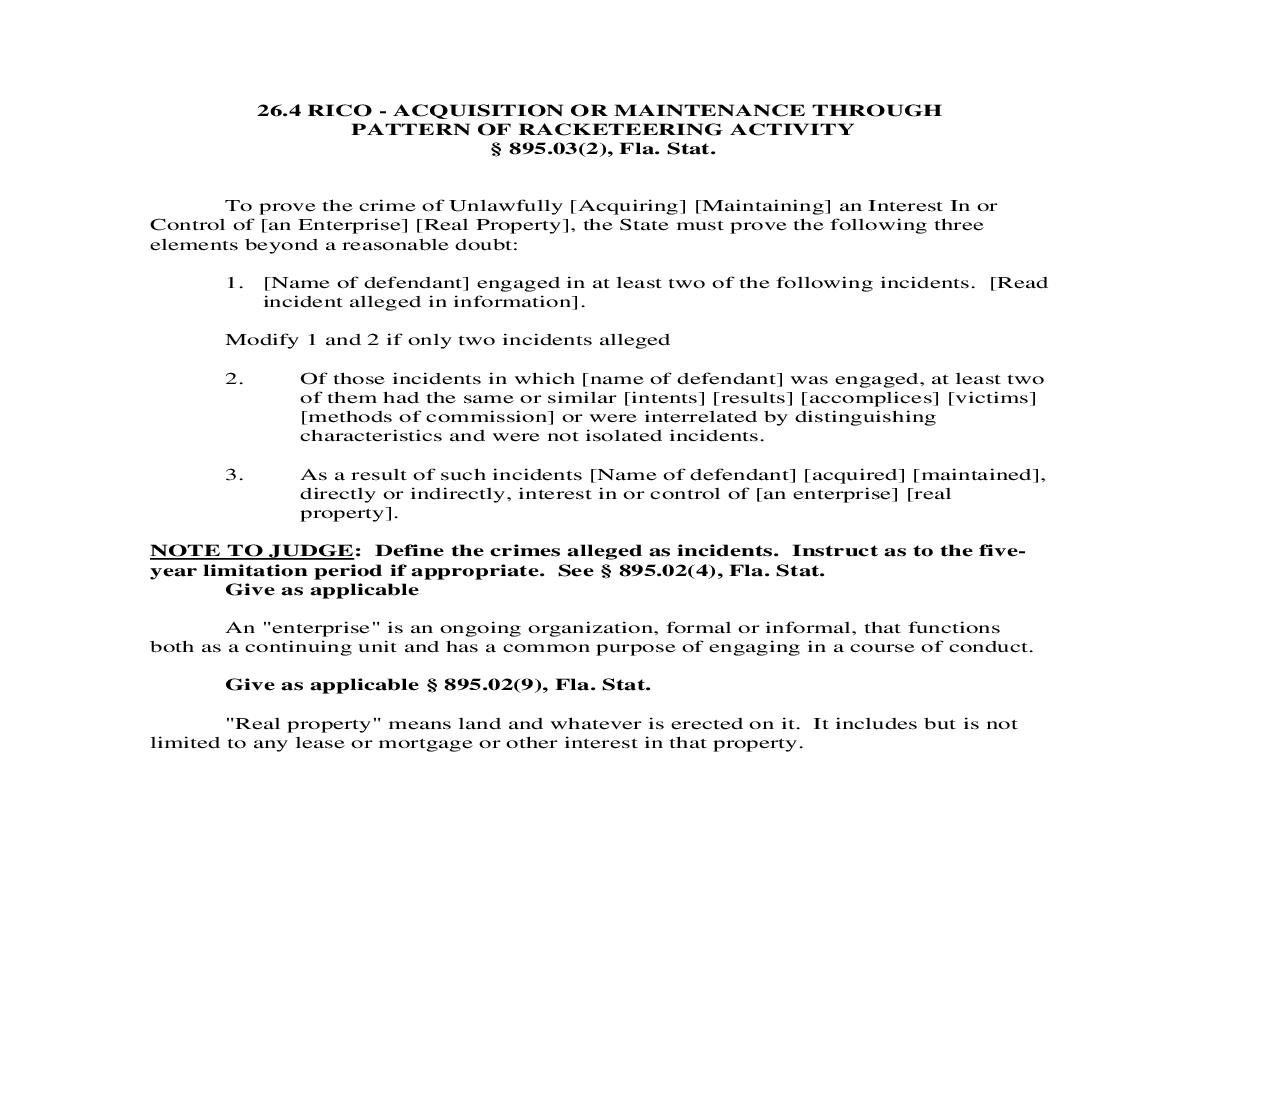 26.4. RICO - Acquisition Or Maintenance Through Pattern Of Racketeering Activity | Pdf Doc Docx | Florida_JI